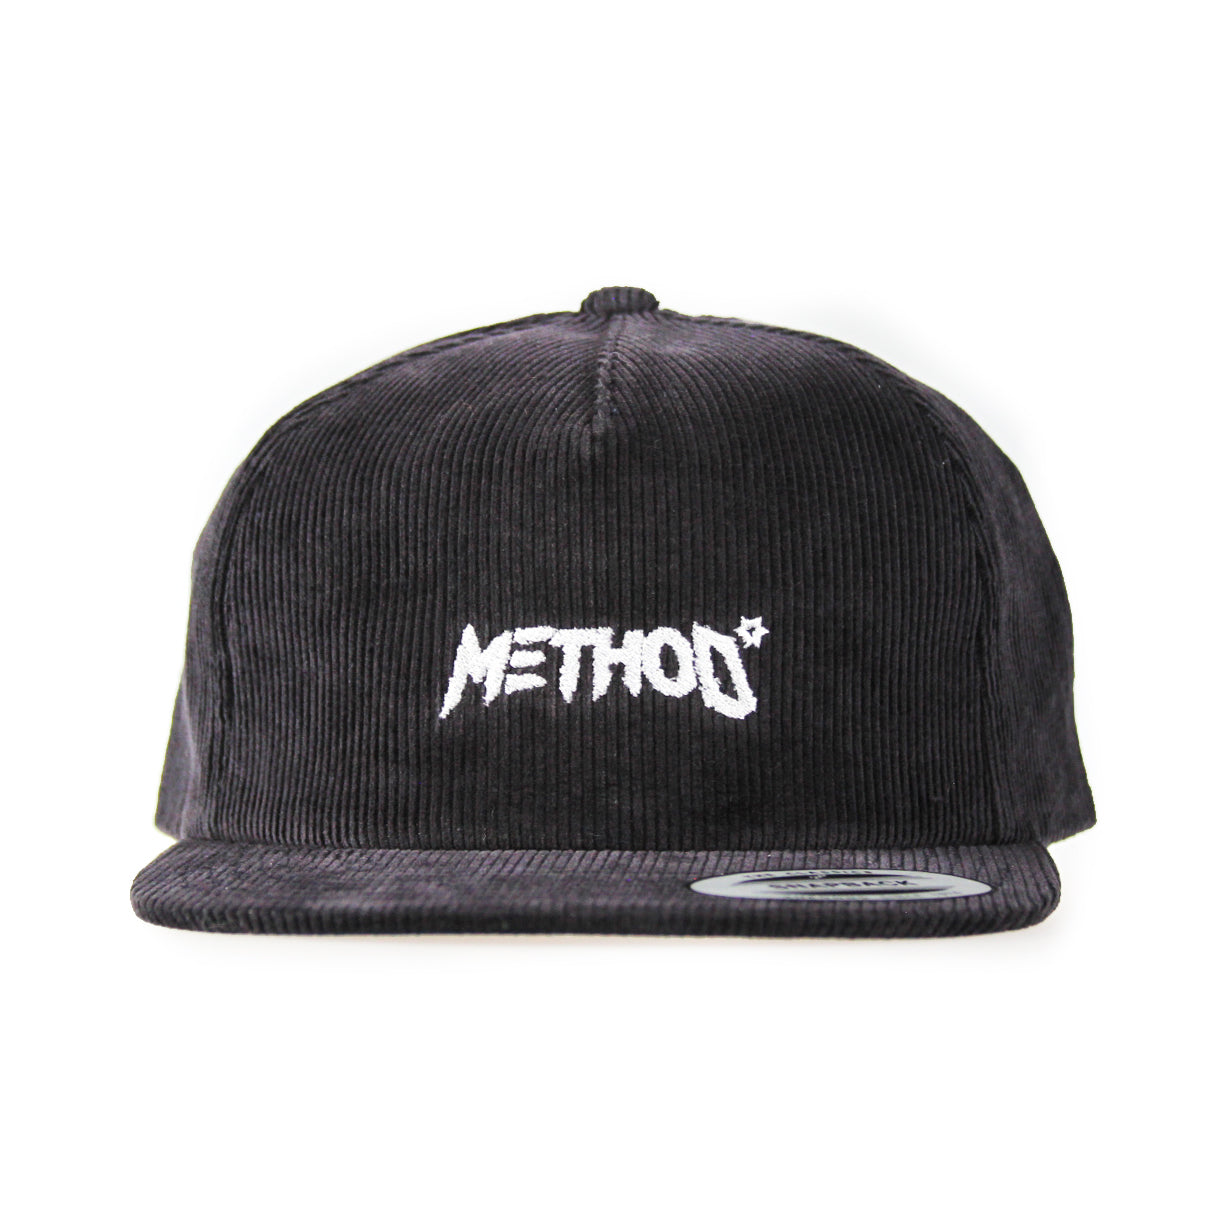 Method Corduroy 5 Panel Snapback Cap